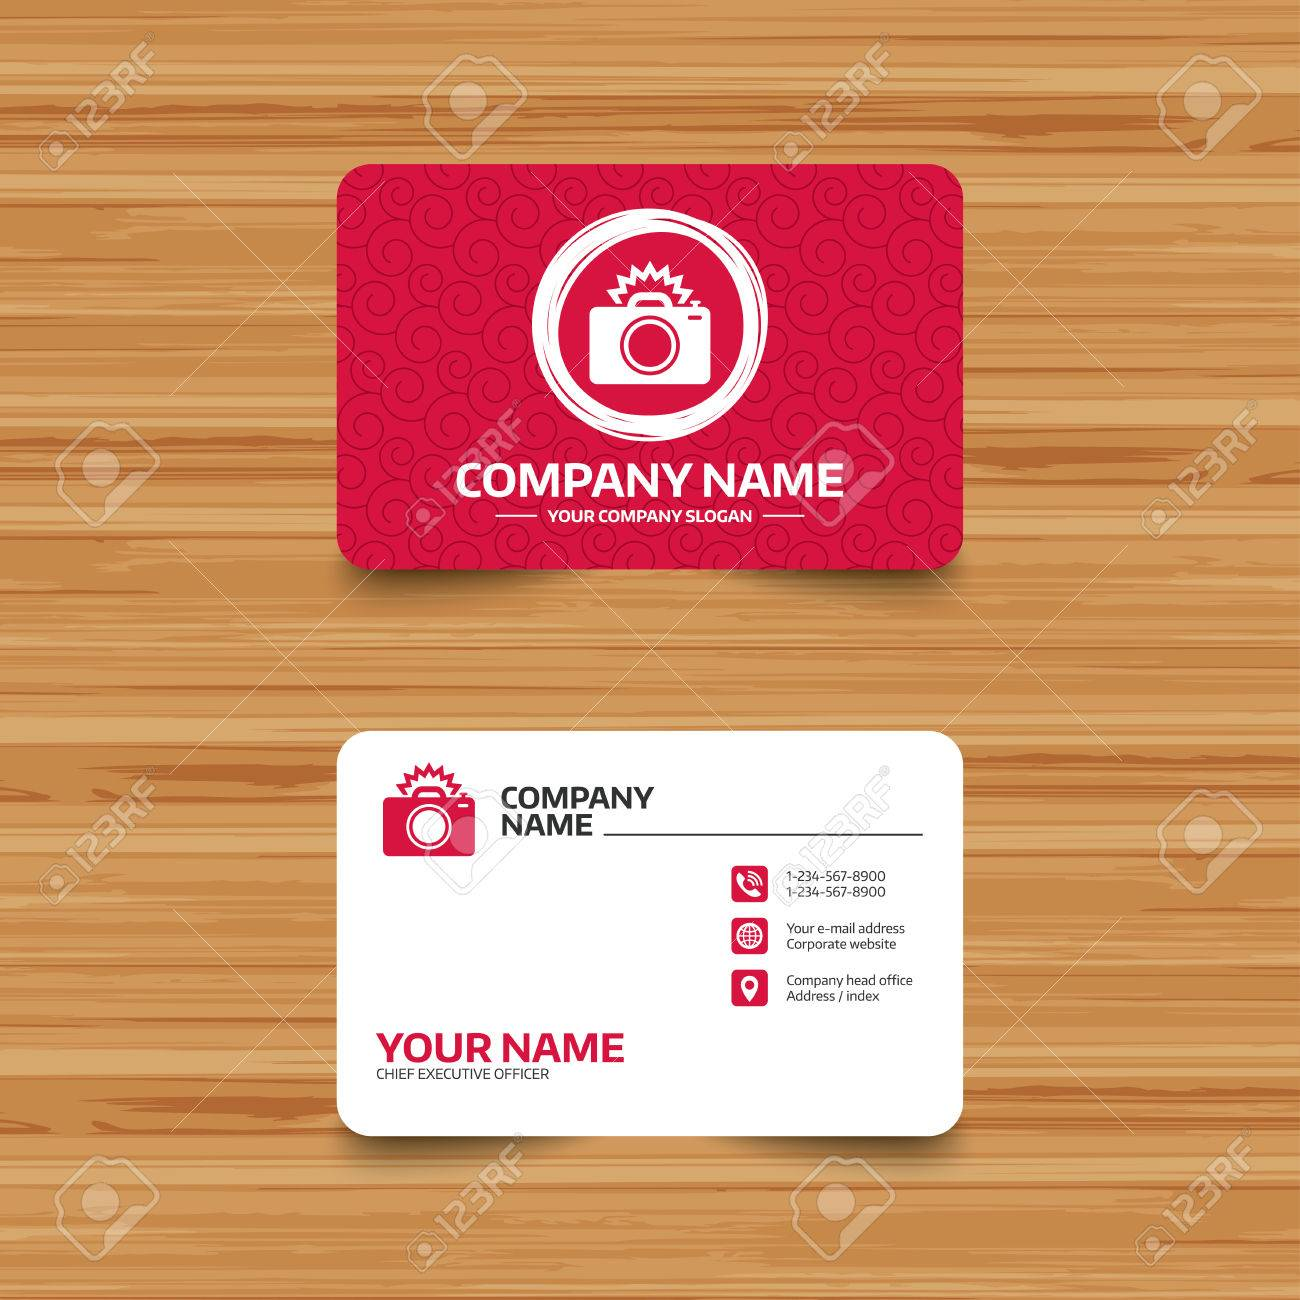 Business card template with texture photo camera sign icon business card template with texture photo camera sign icon photo flash symbol phone reheart Choice Image